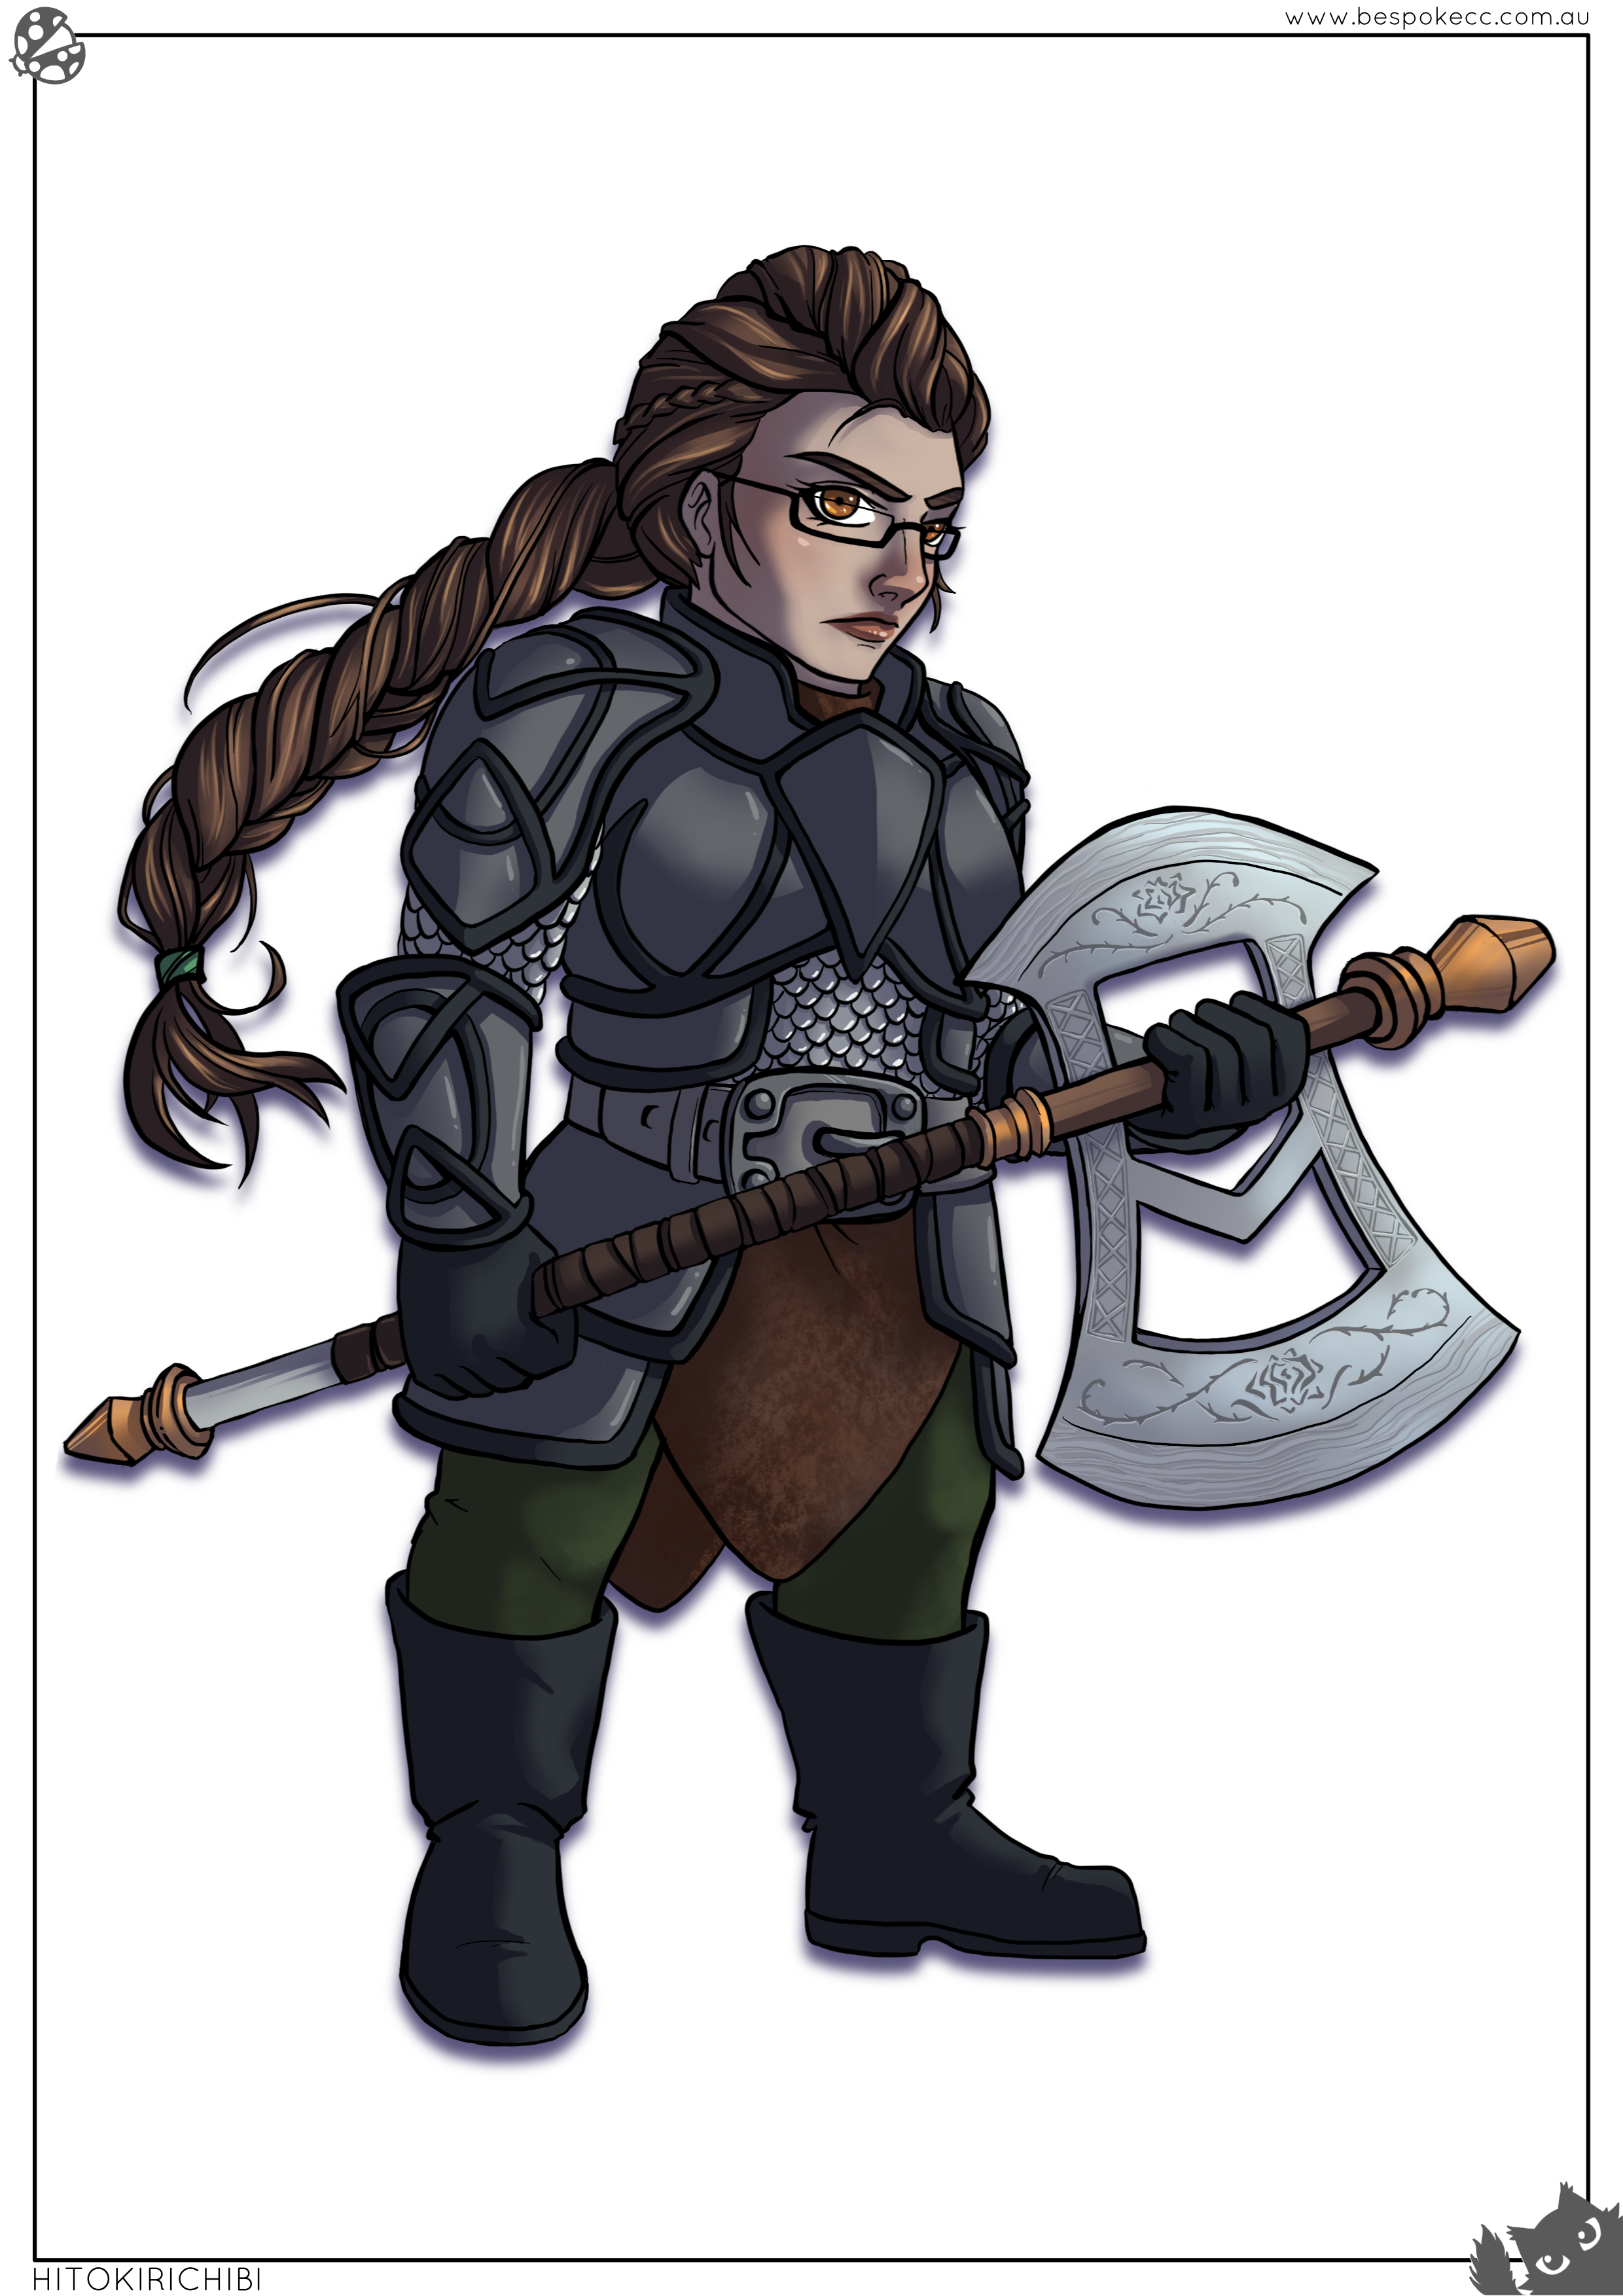 Dwarf Cleric of the Forge